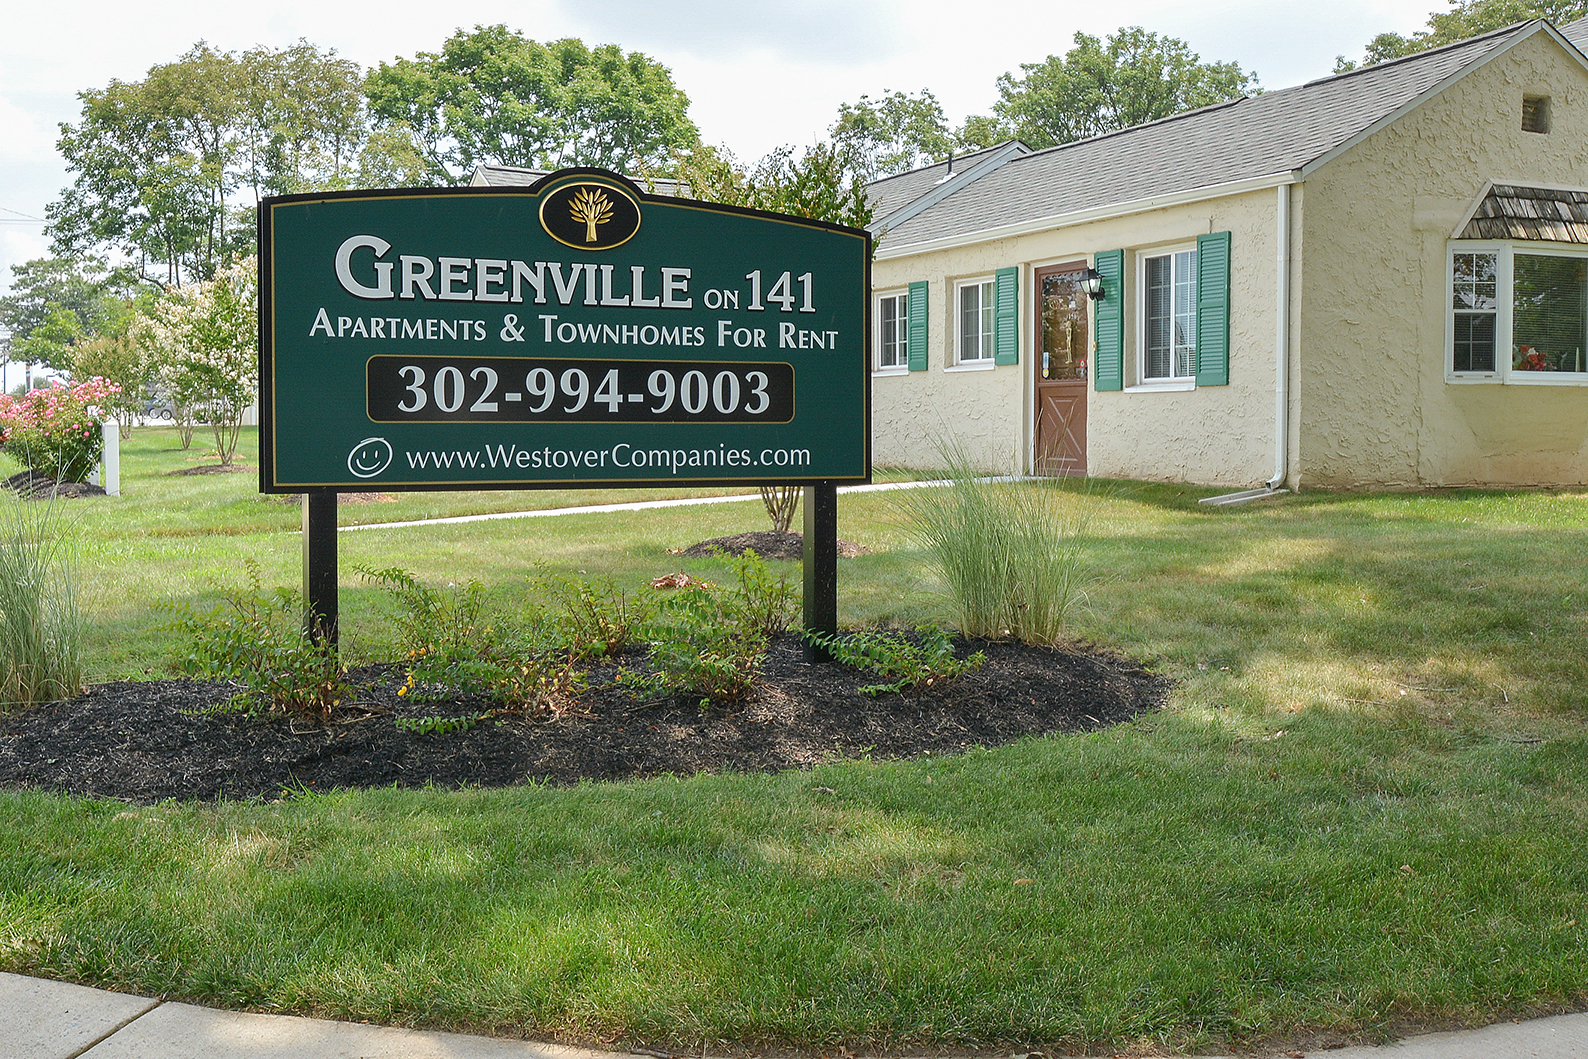 Greenville on 141 Apartments & Townhomes image 0